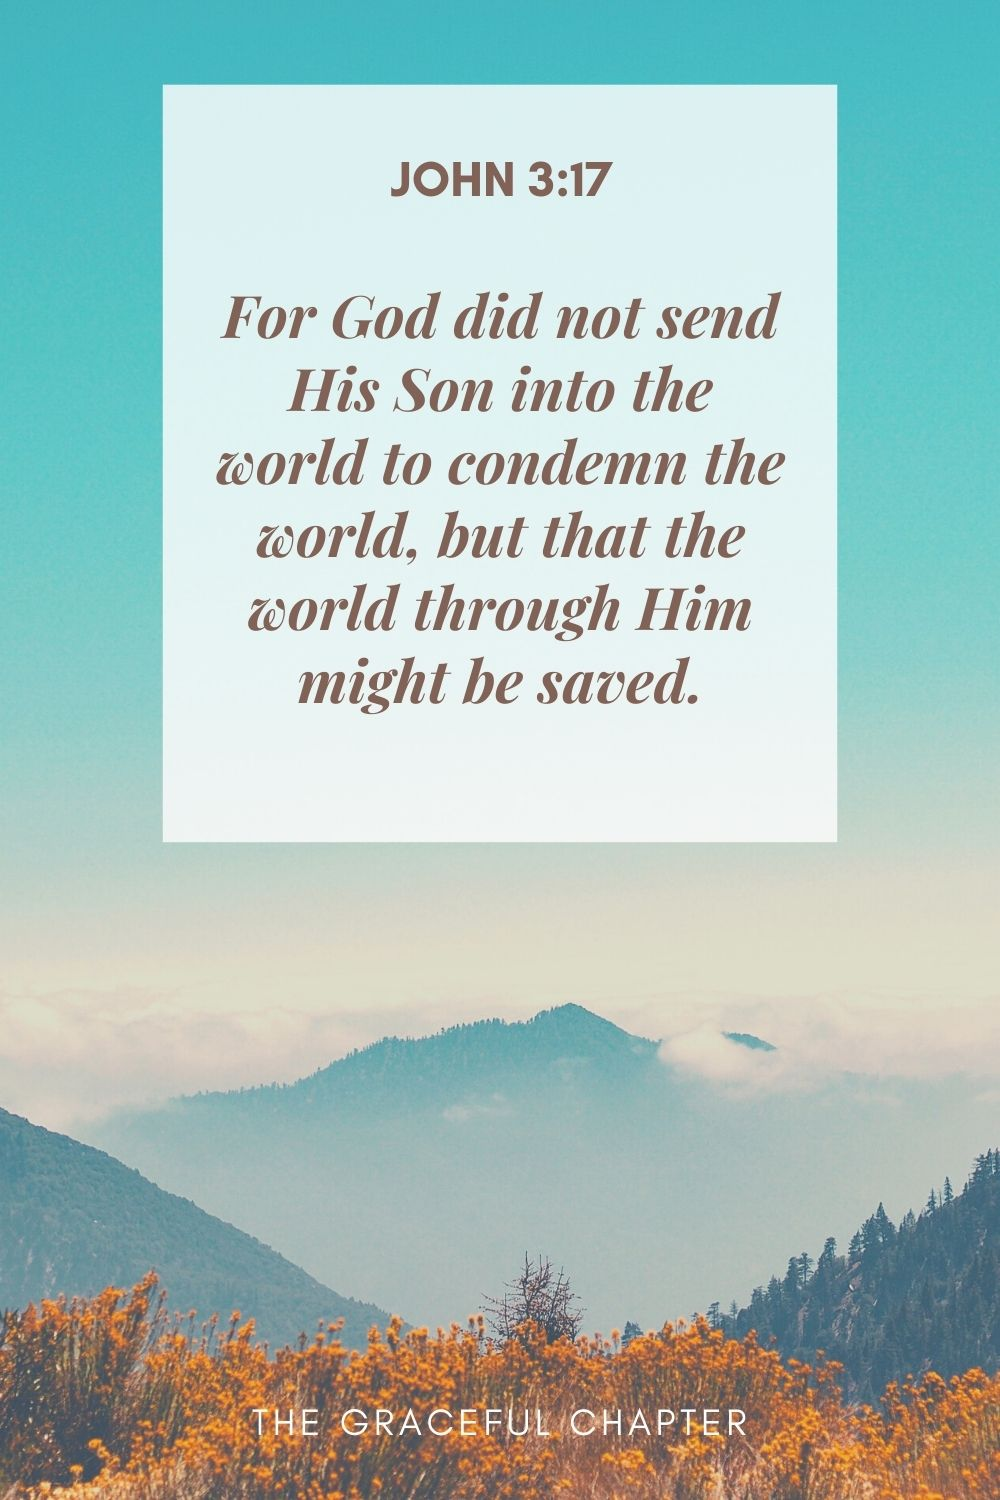 For God did not send His Son into the world to condemn the world, but that the world through Him might be saved. John 3:17